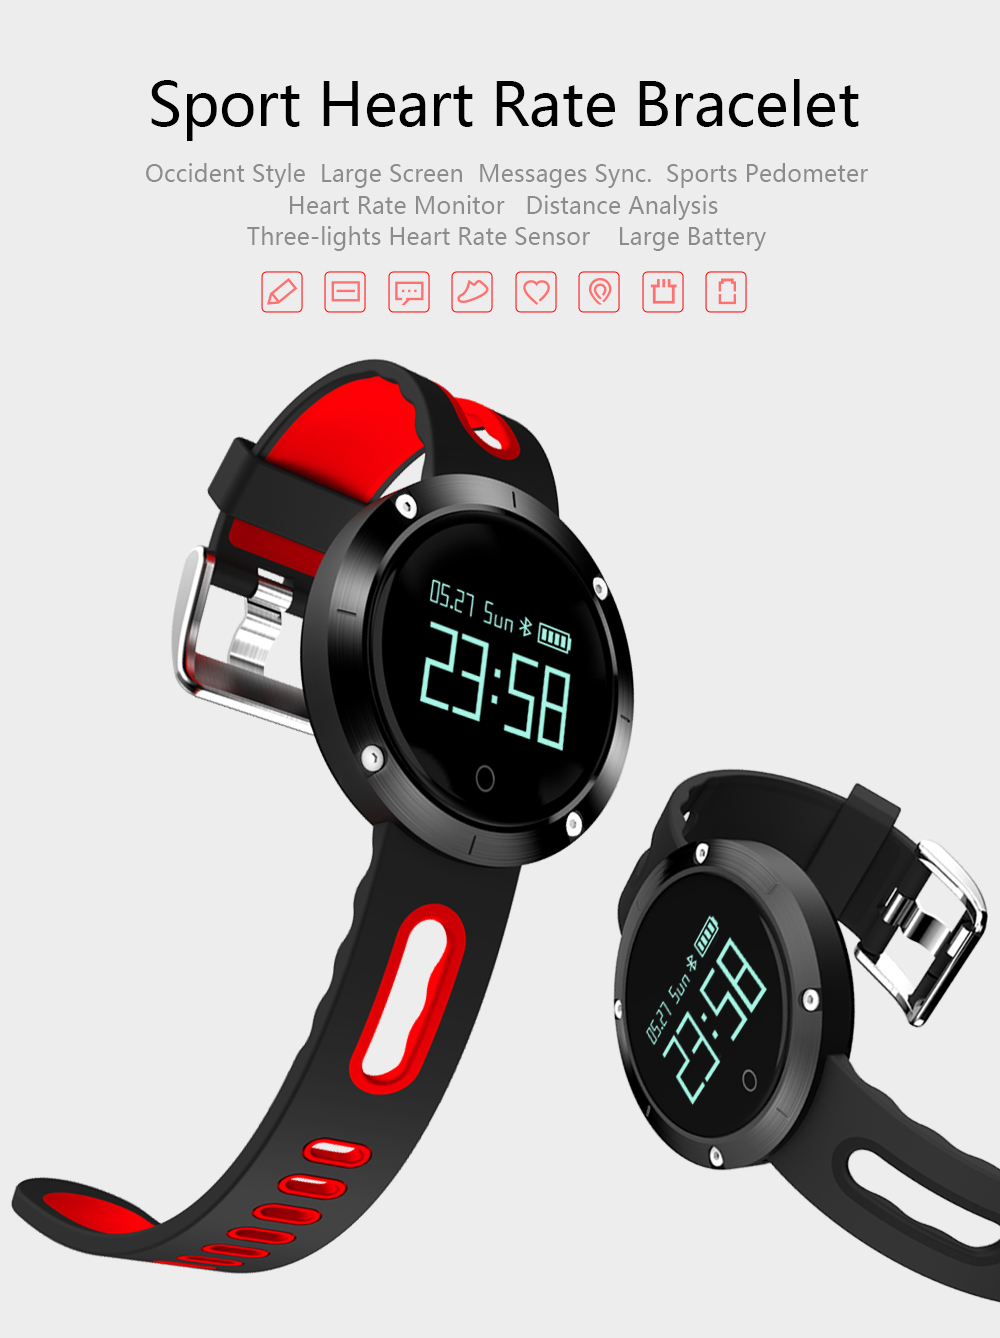 Teamyo DM58 Smart Band Blood Pressure Watch Fitness Tracker Heart Rate Smart Bracelet relogio cardiaco for iPhone Android Phone 6